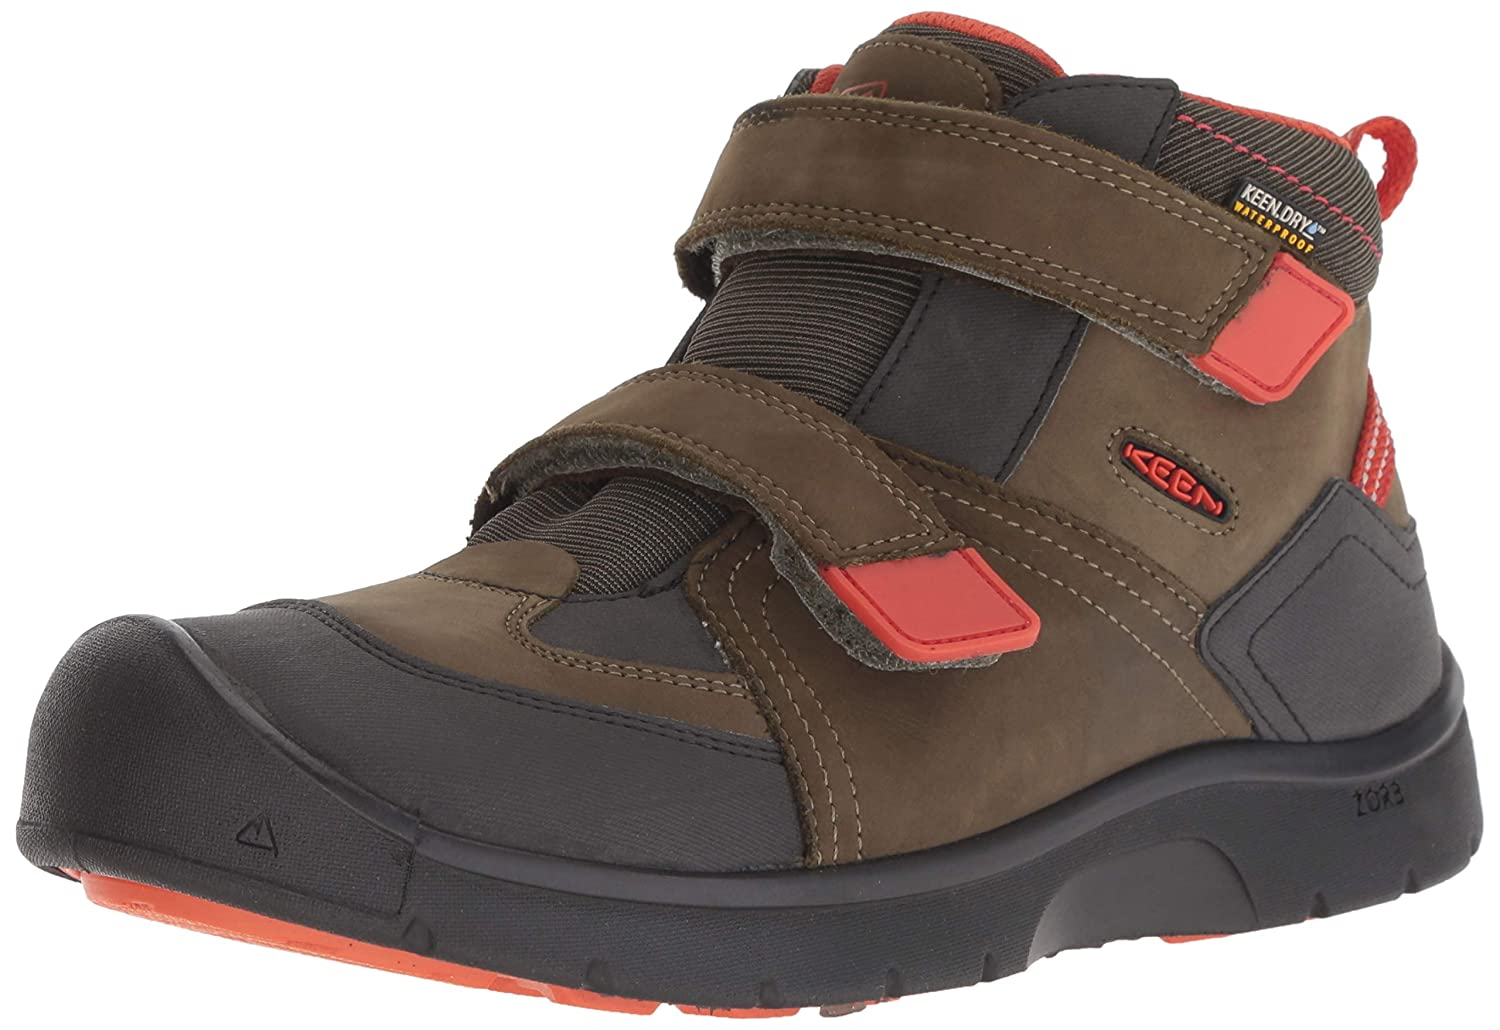 Keen Kids HIKEPORT MID Strap WP Hiking Boot